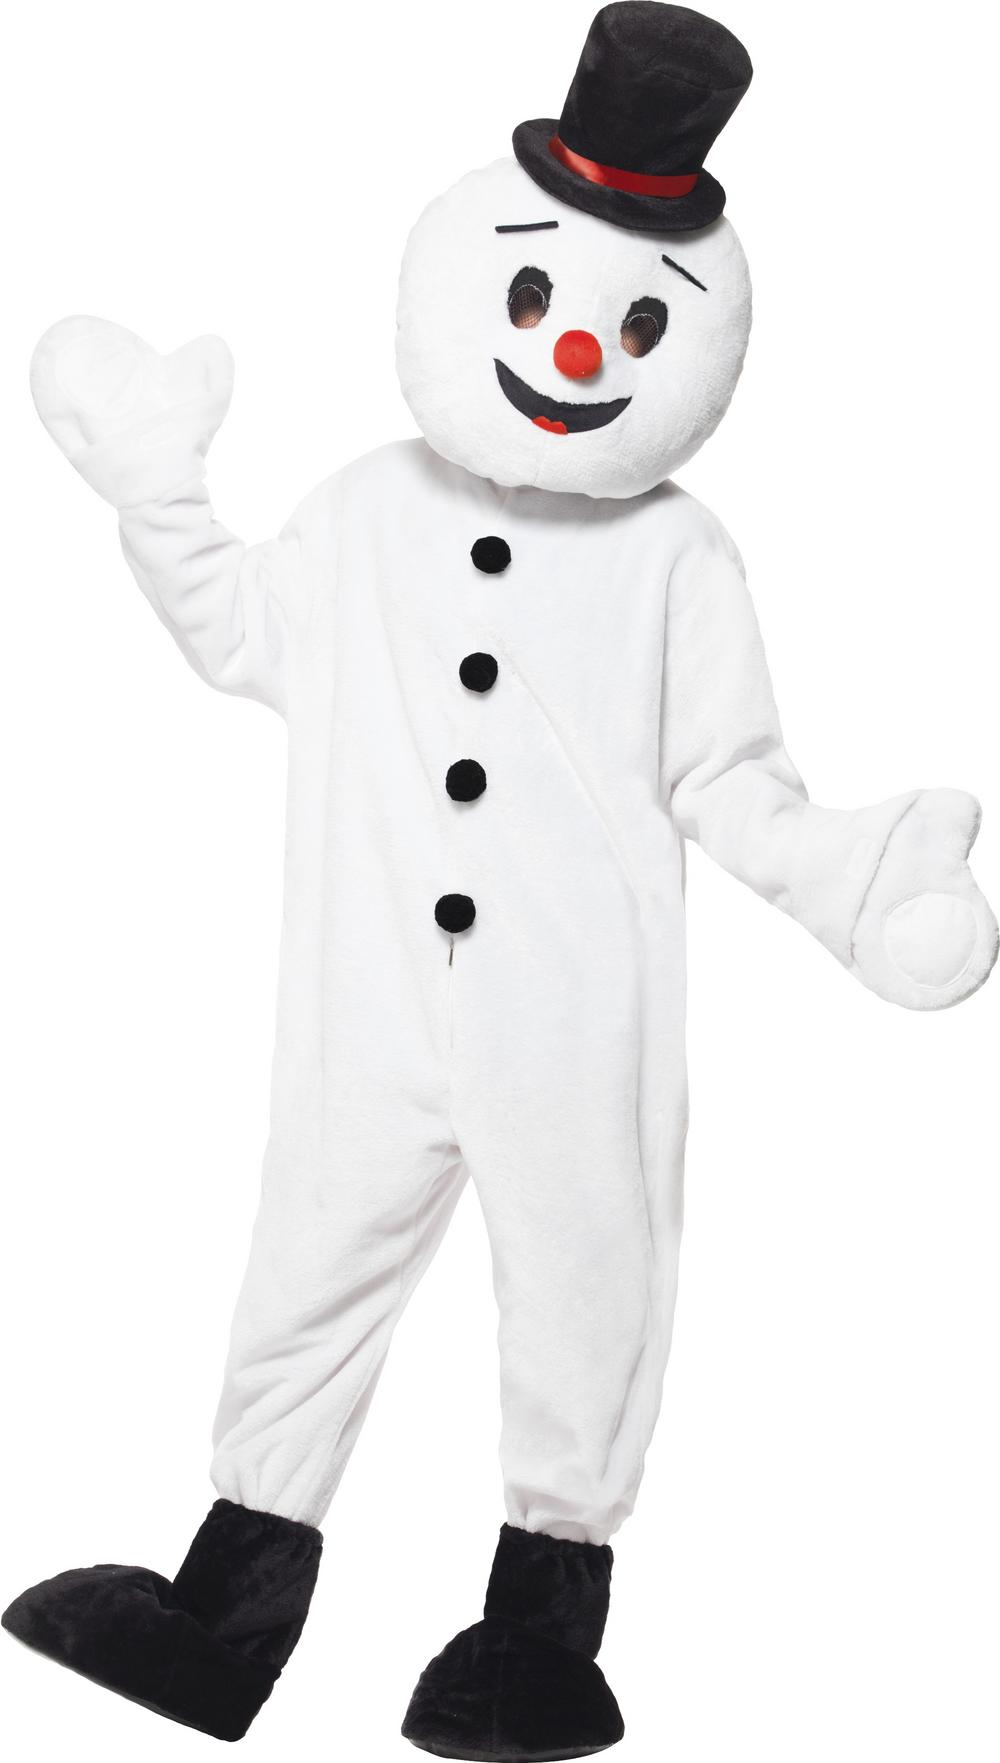 Snowman Mascot Adults Costume